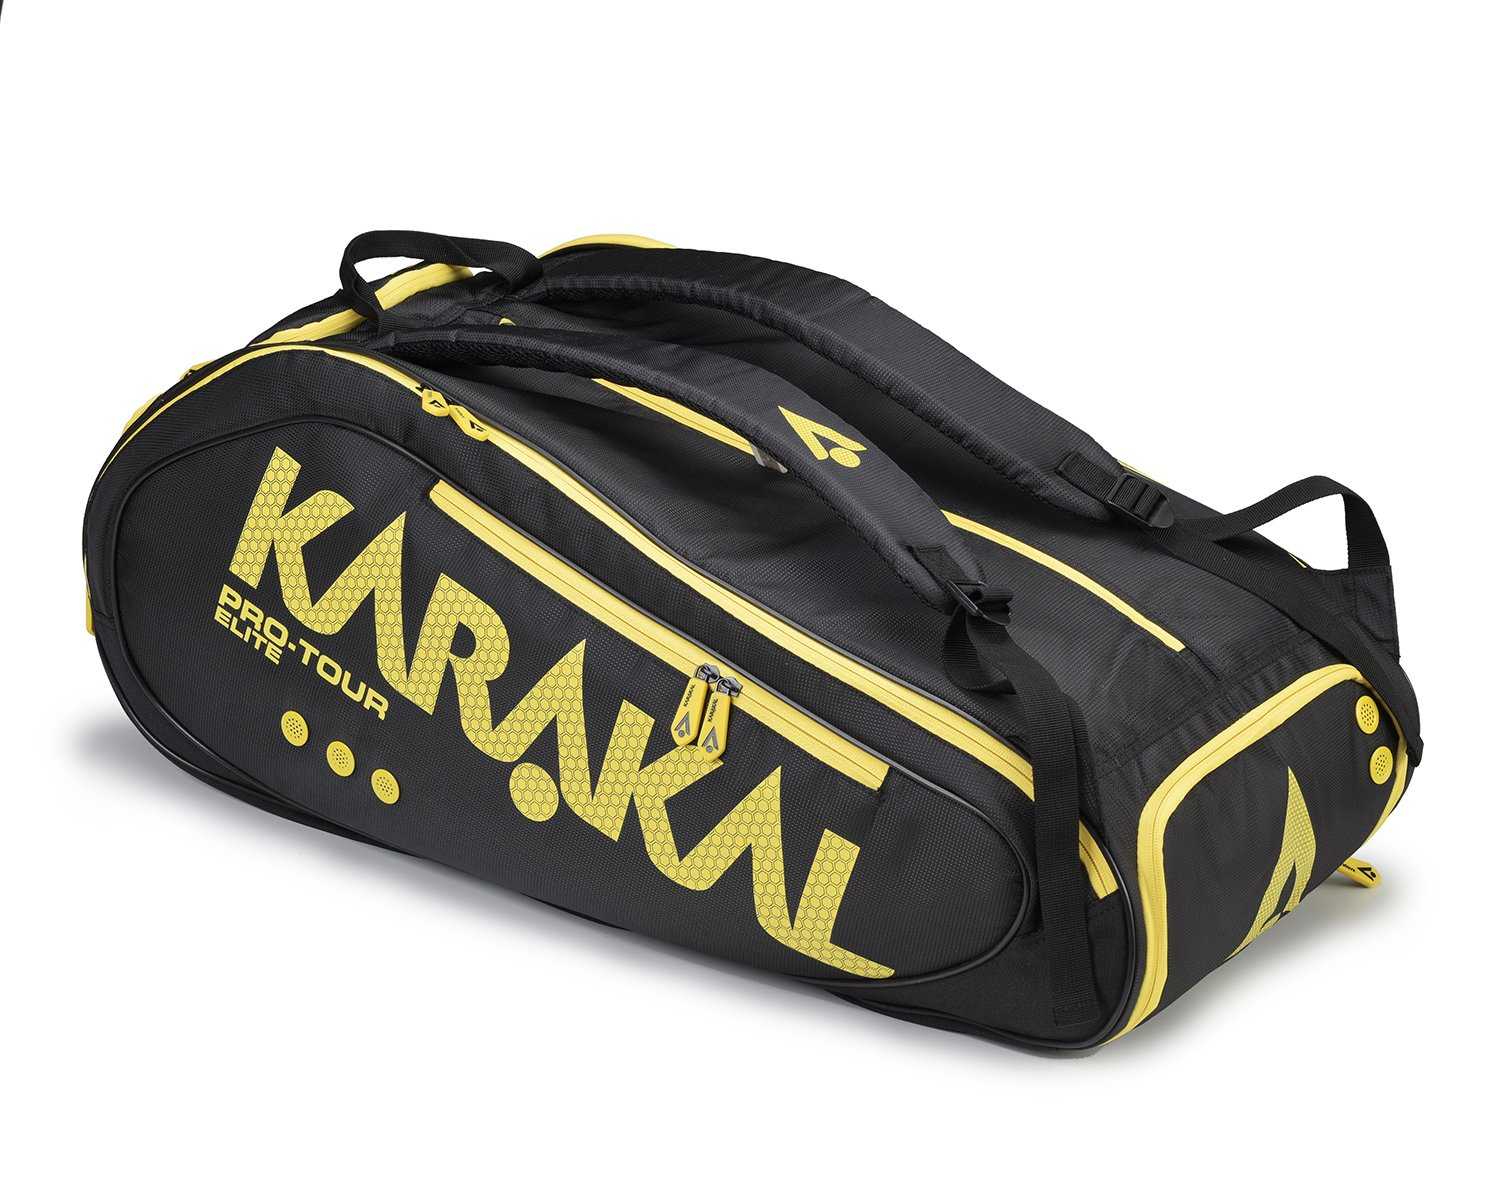 Karakal Pro Tour Elite 12 Racket Bag KZ 980